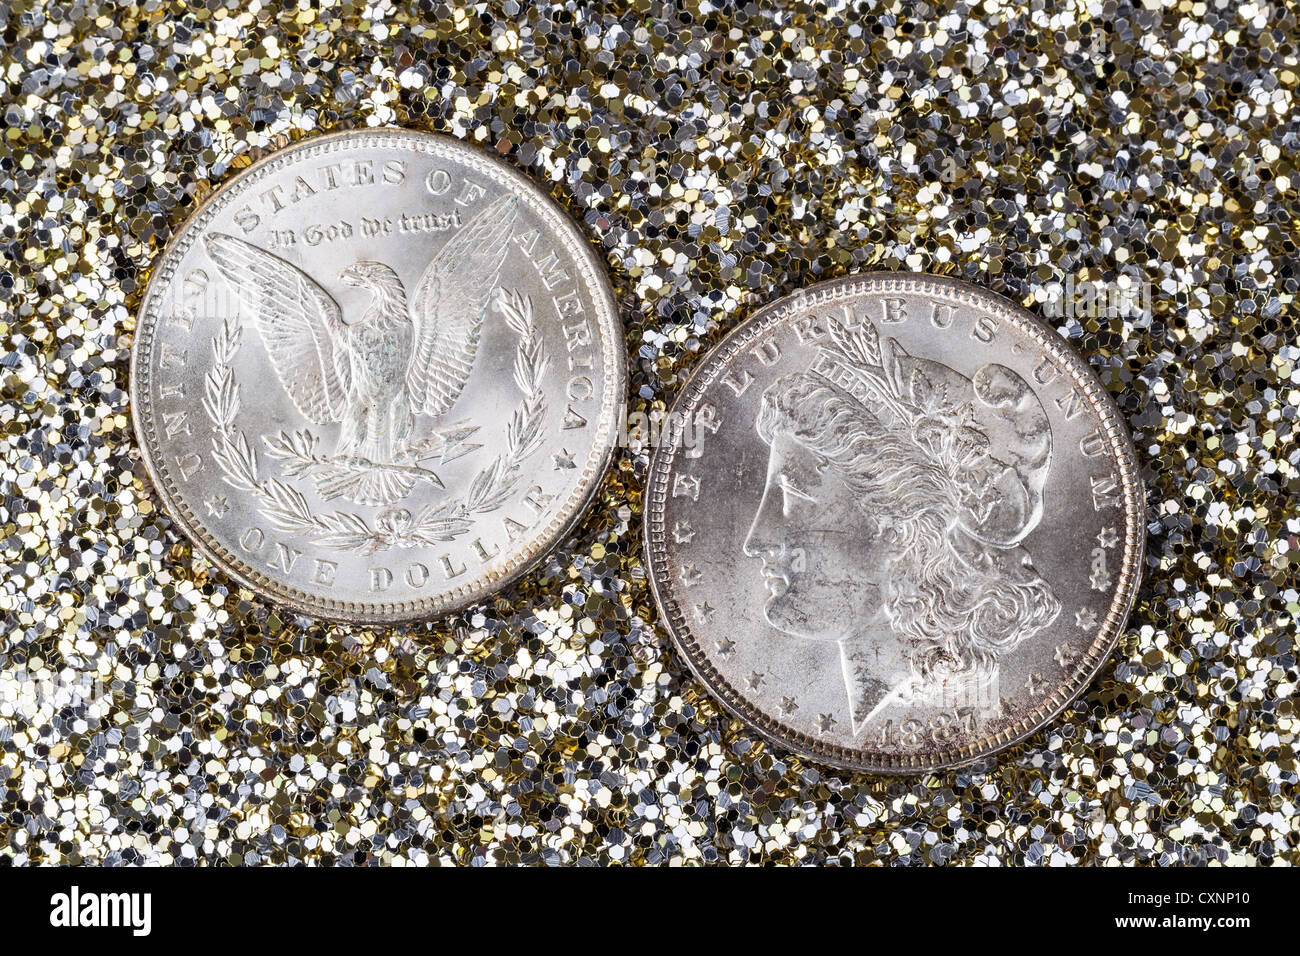 Obverse and Reverse of American Silver Dollar on Gold and Silver Glitter Background - Stock Image